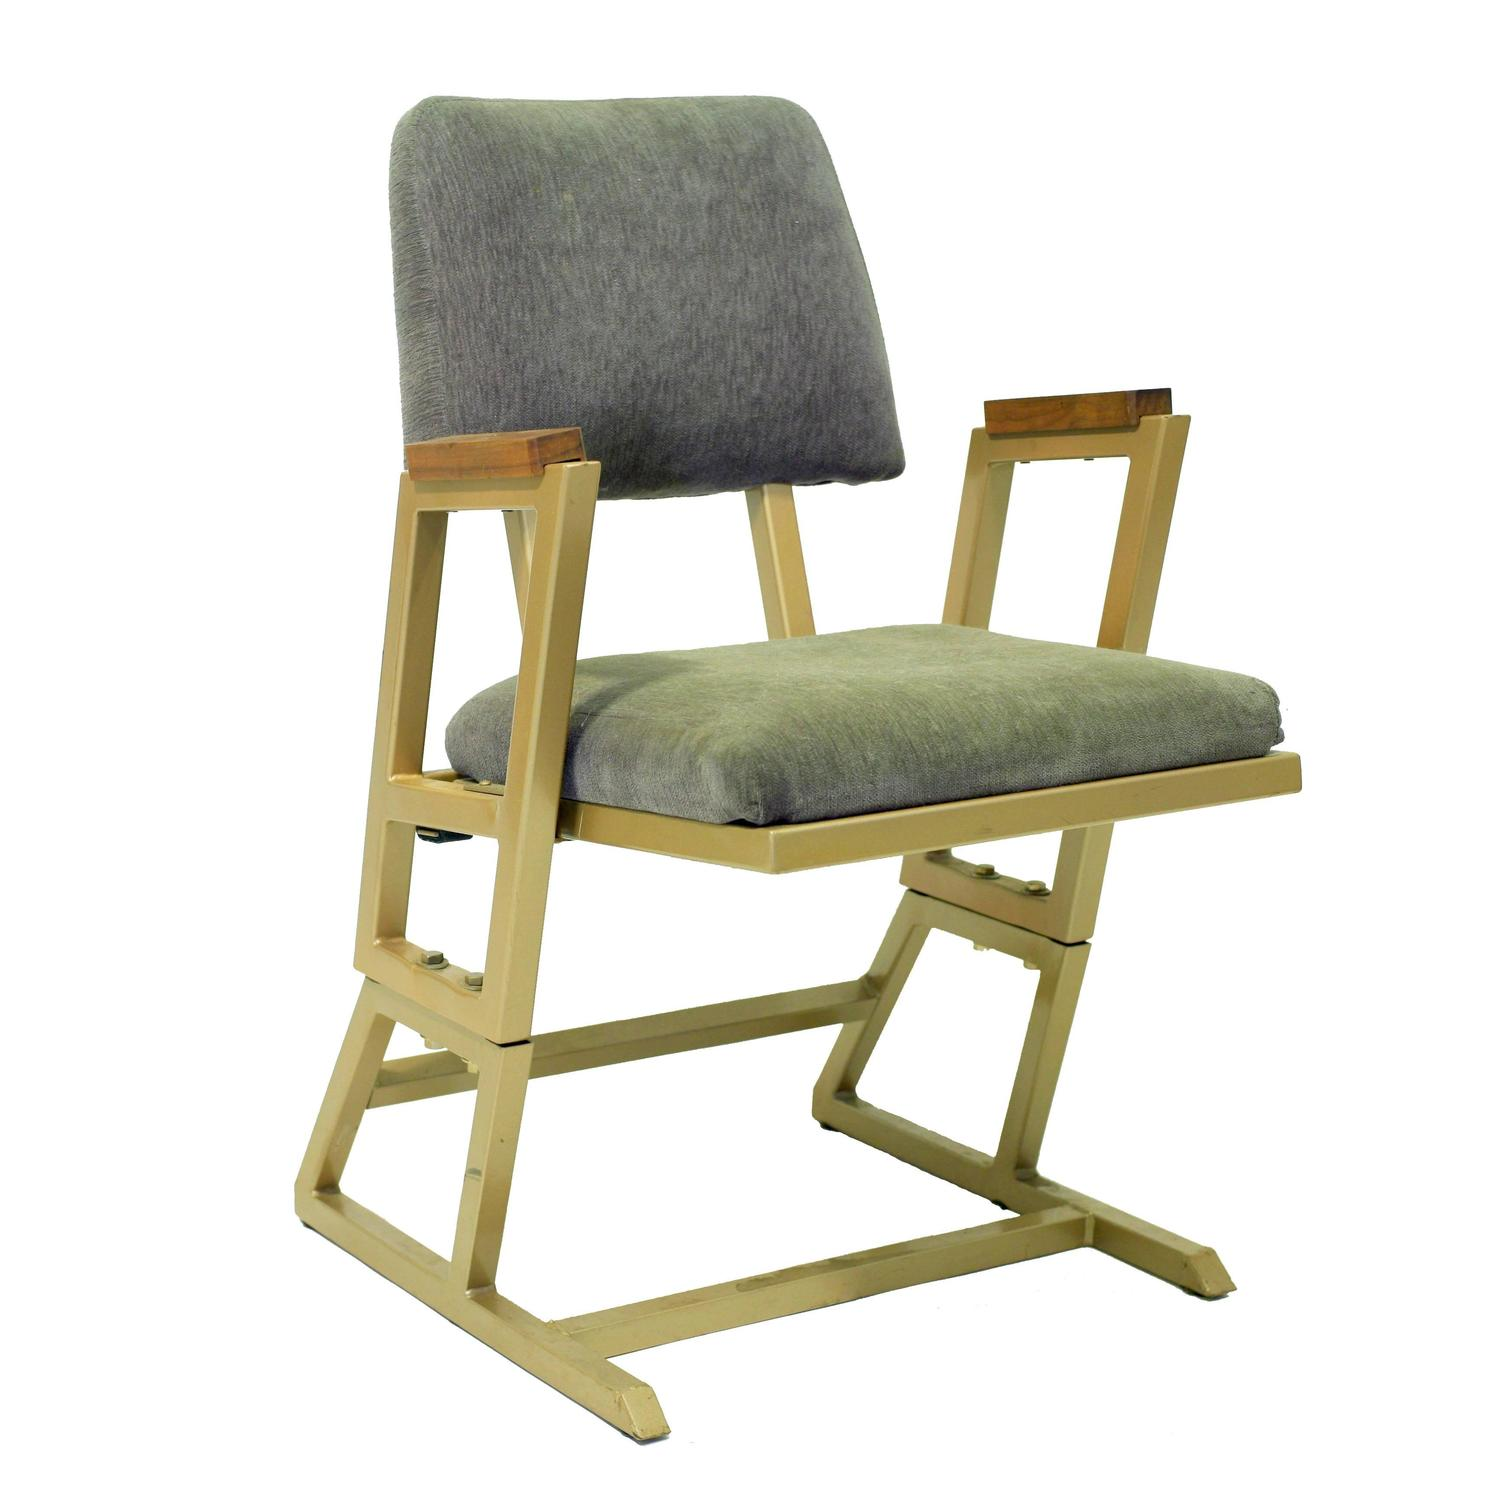 Frank Lloyd Wright Chairs Frank Lloyd Wright Kalita Humphreys Theater Chair For Sale